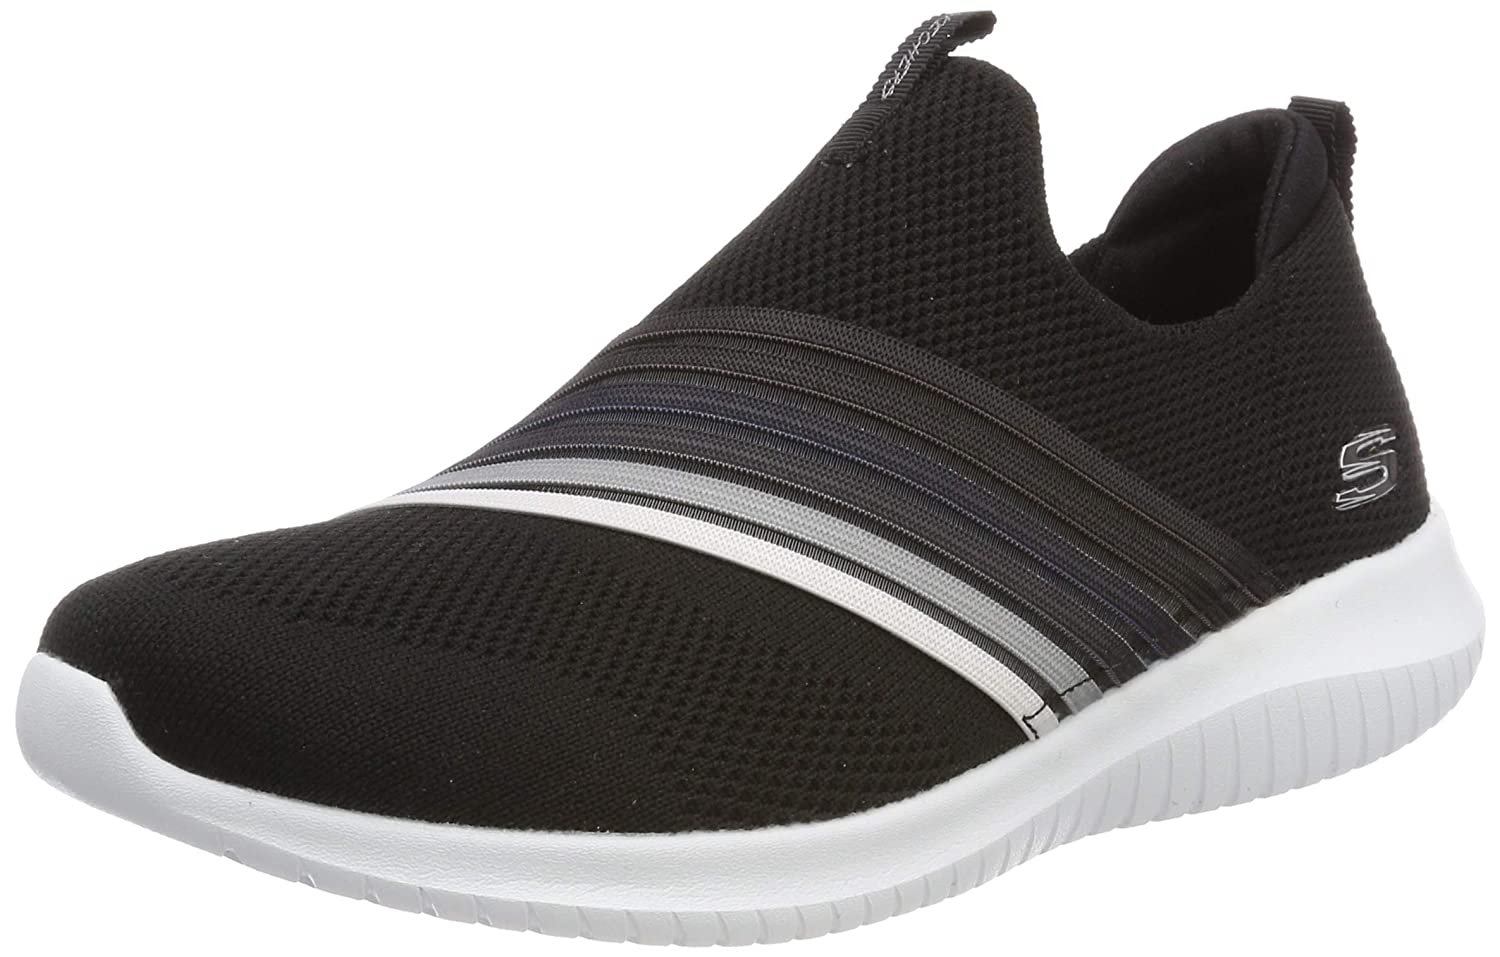 Skechers Damen Ultra Flex-brightful Day Slip On Turnschuhe